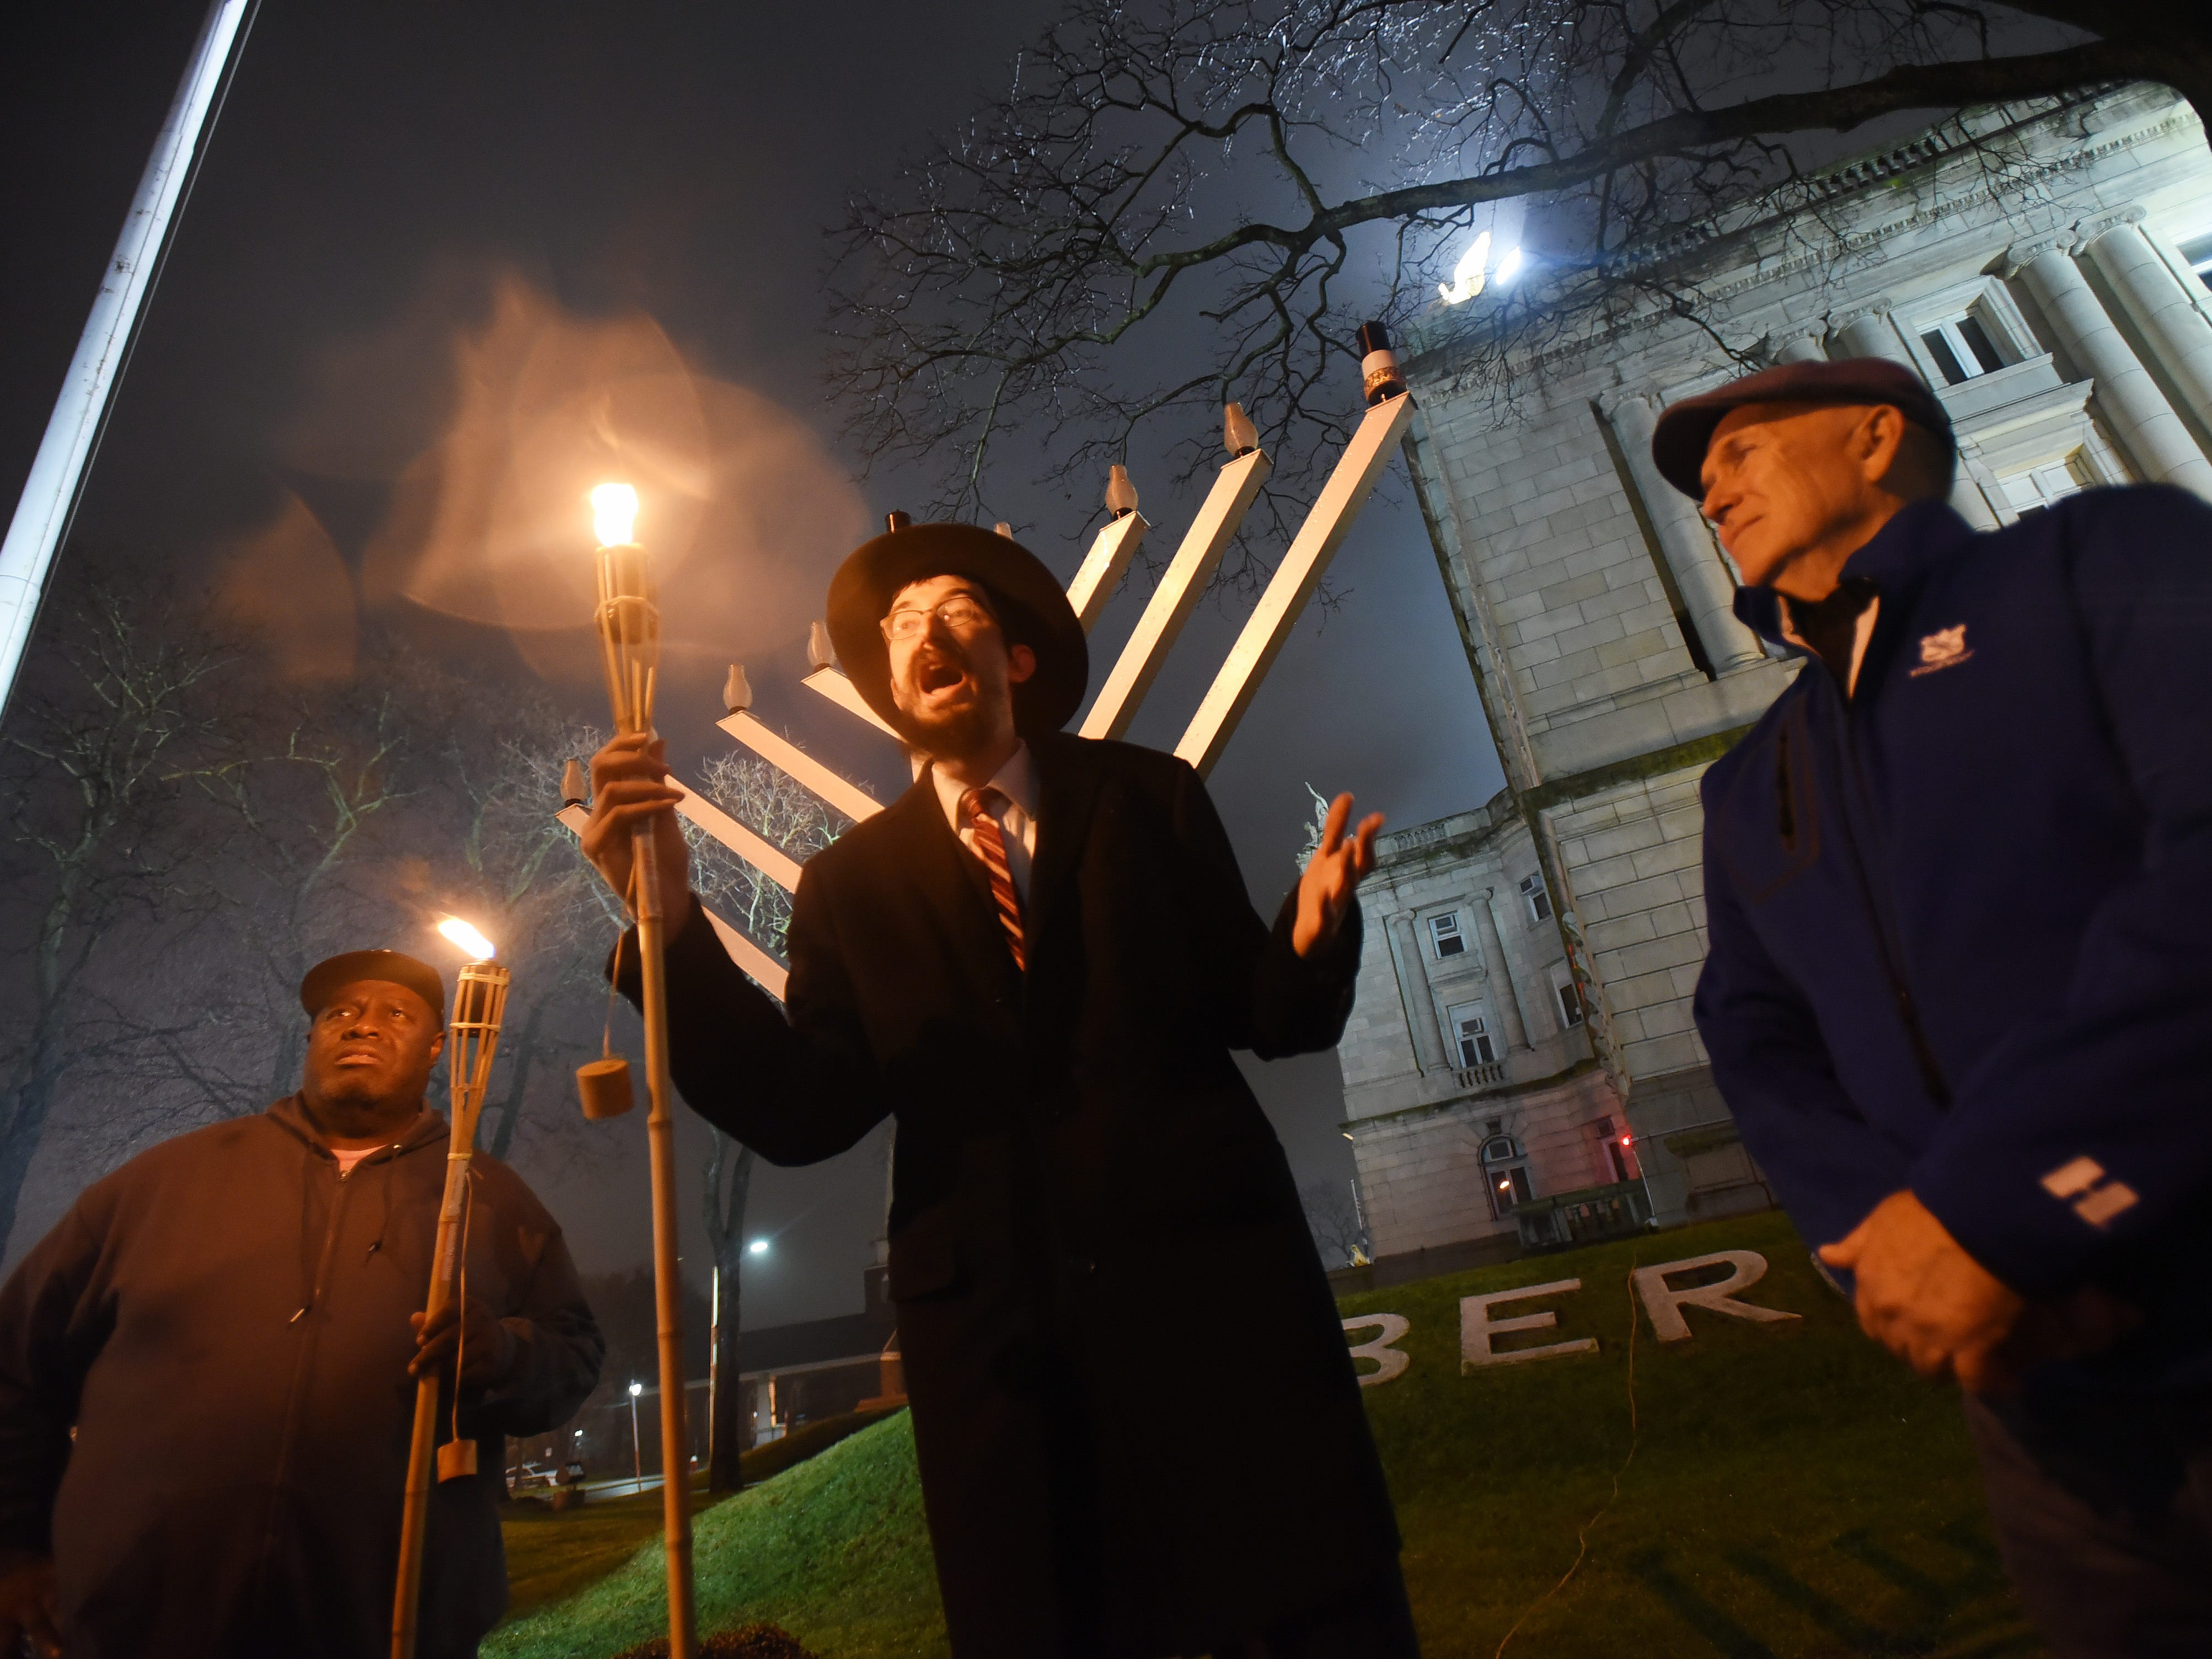 Rabbi Mendy Kaminker from Chabad of Hackensack, holds a torch as he speaks to participants while Deputy Hackensack Mayor David Sims (L) and Hackensack Mayor John Labrosse (R) look on prior to the lighting ceremony to celebrate the 2018 Hanukkah season at the front lawn of Bergen County Courthouse in Hackensack on 12/02/18.